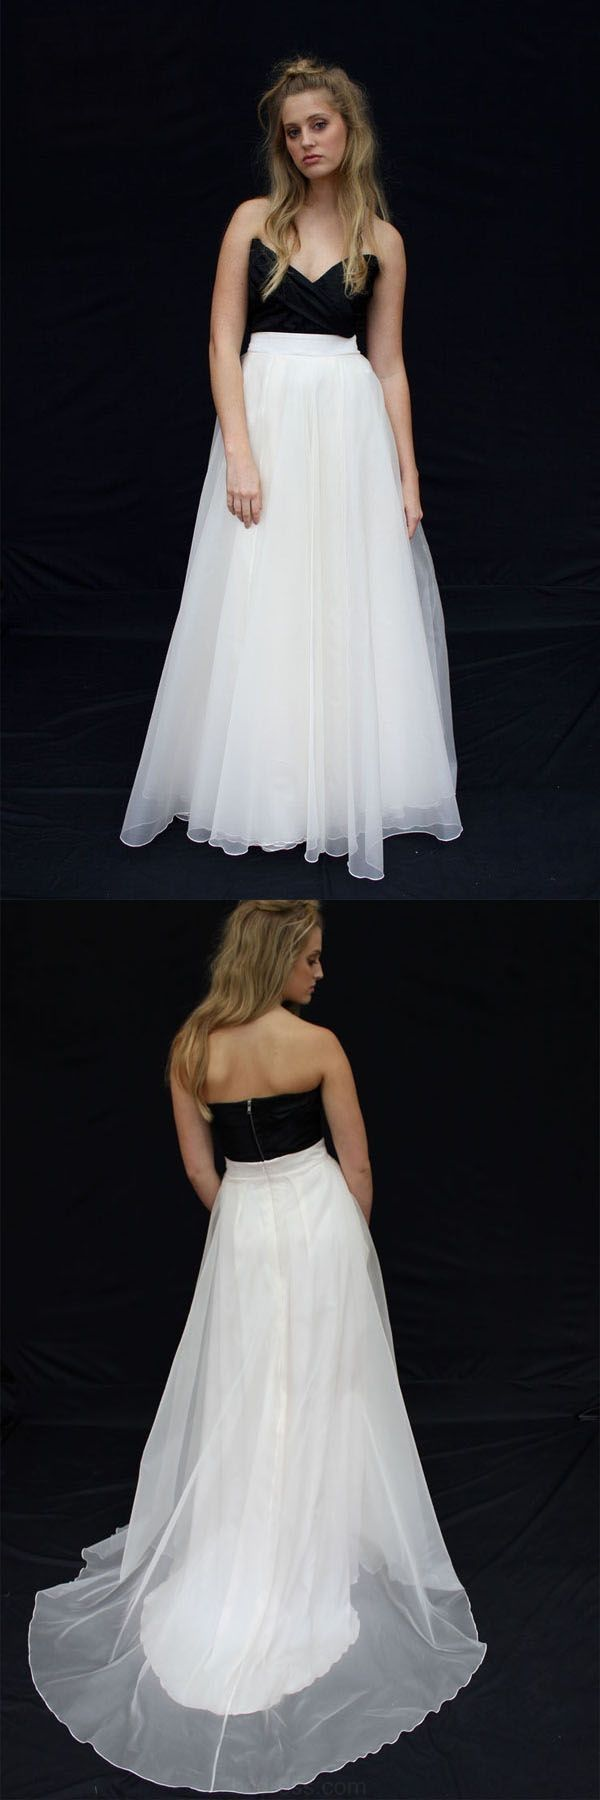 Twopiecepromdresses two piece prom dresses white prom dresses